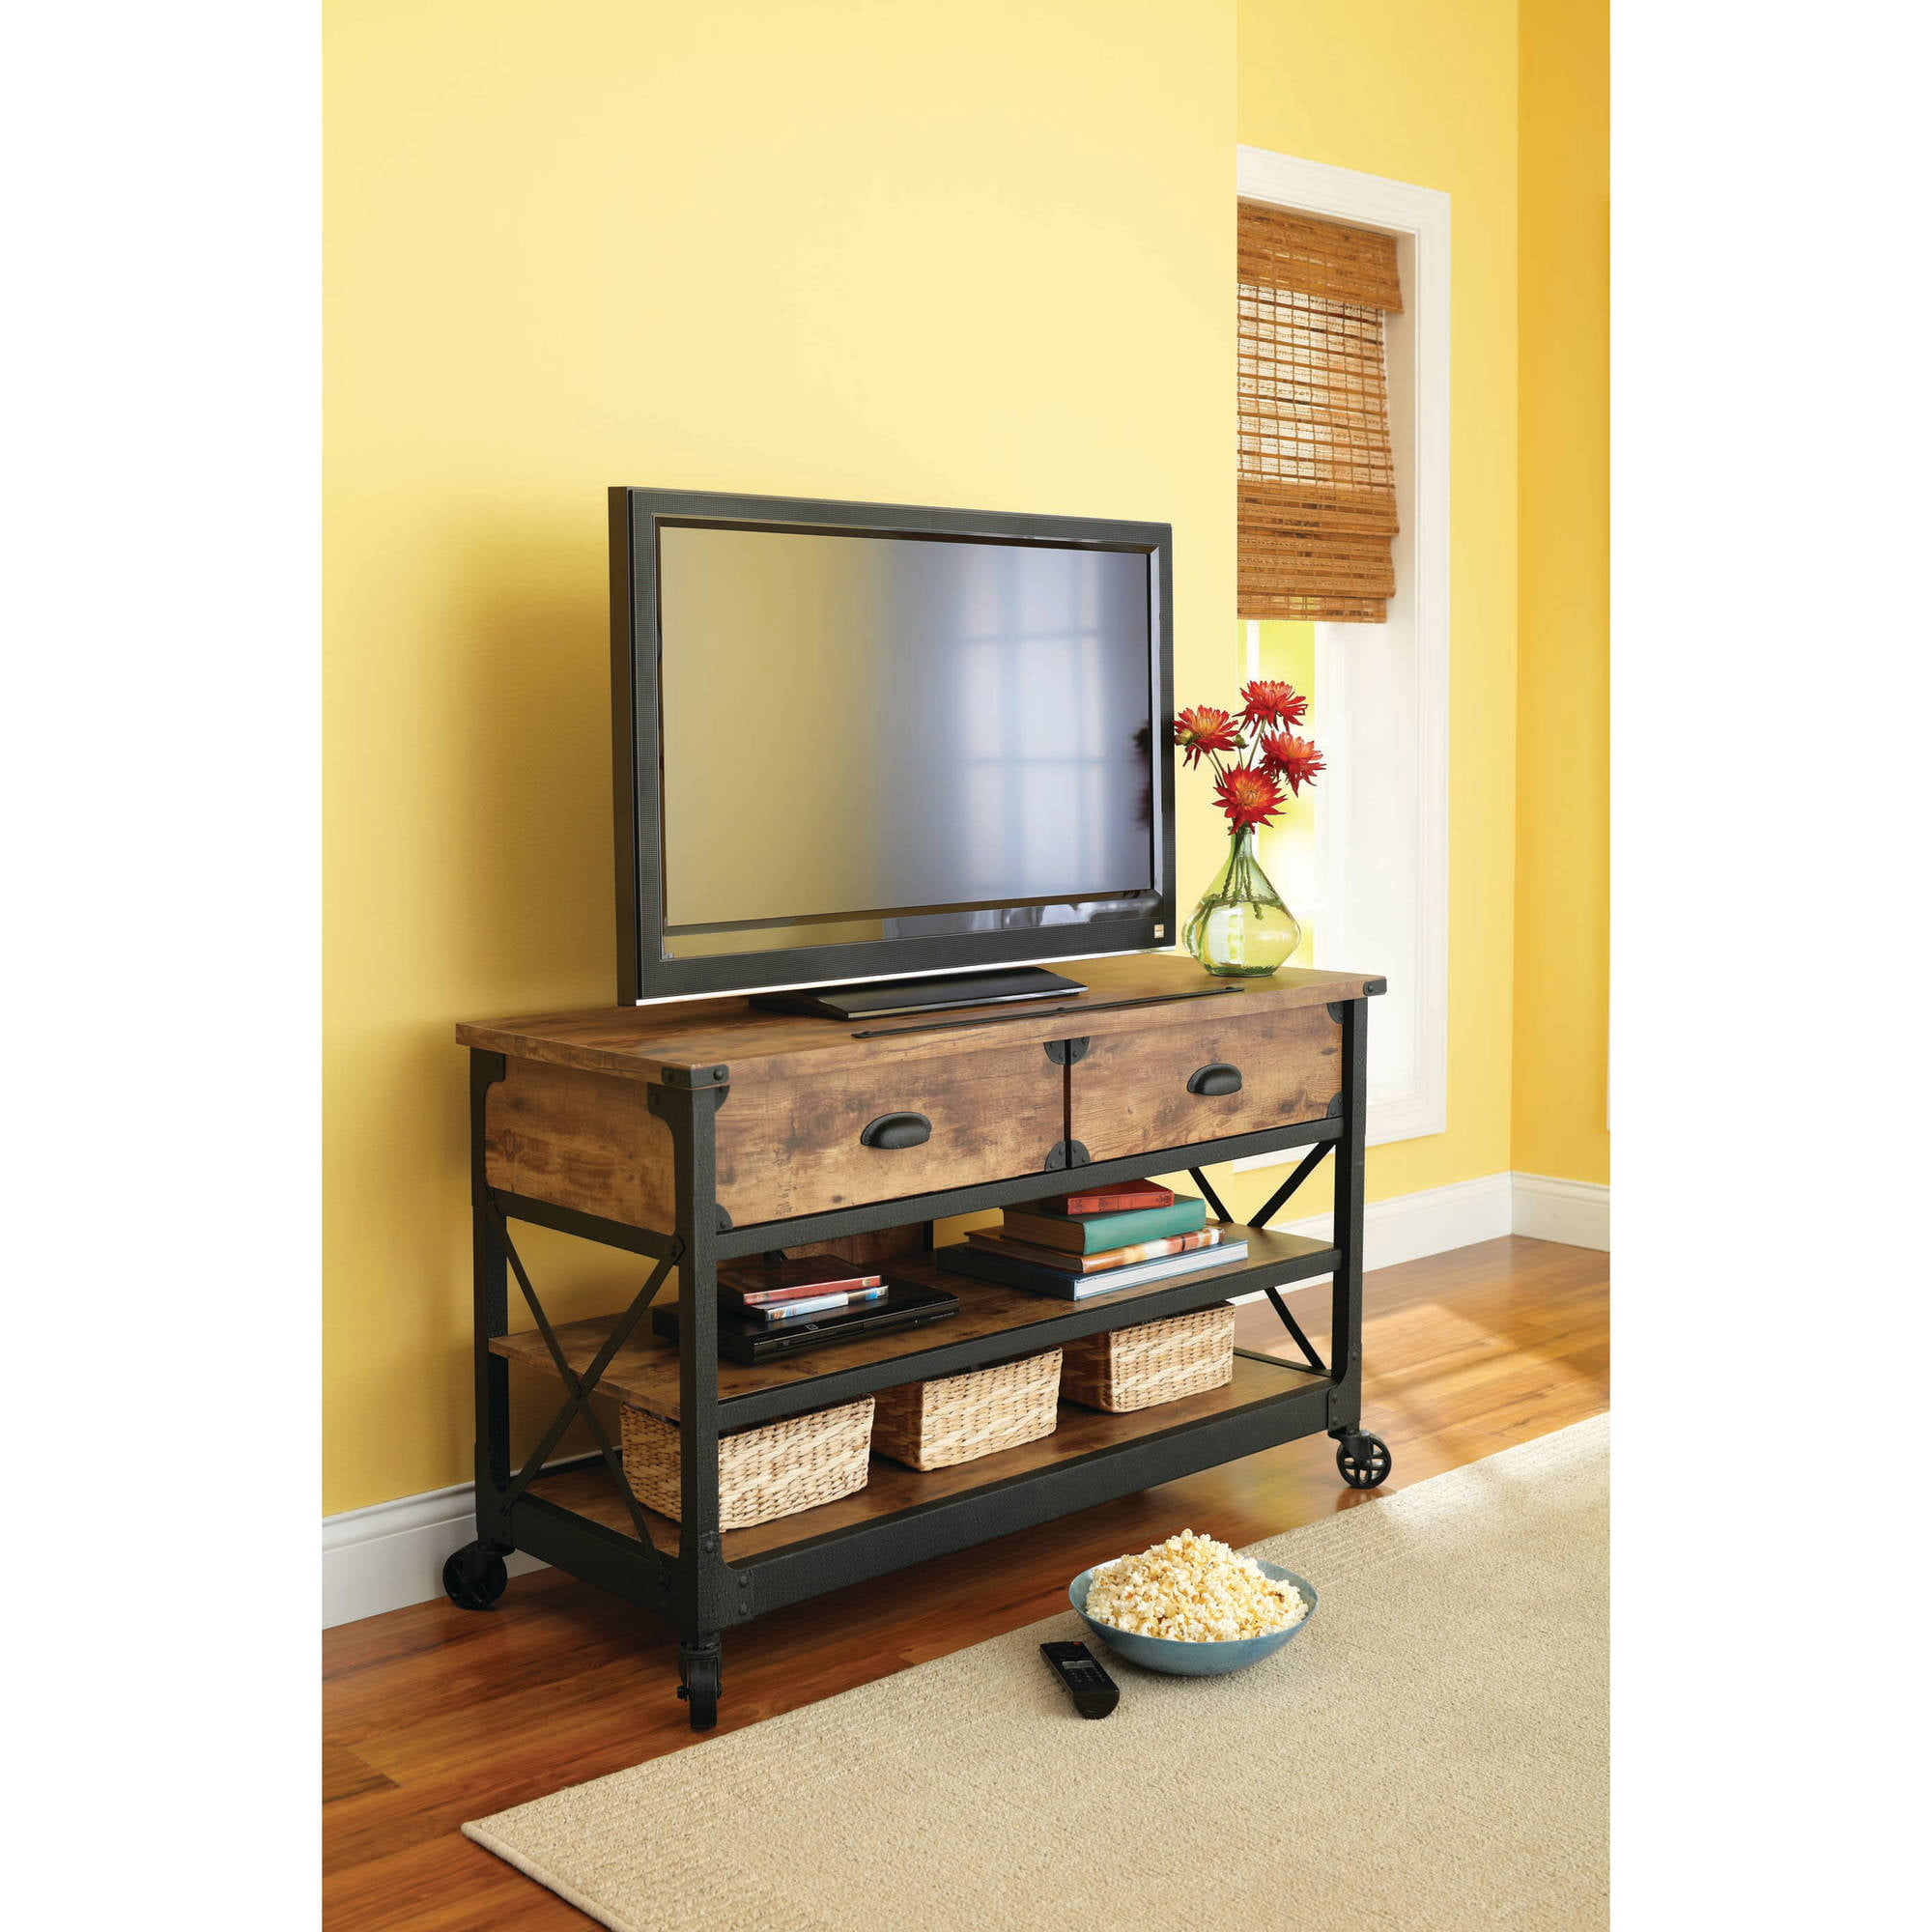 Better homes and gardens rustic country living room set Home garden television